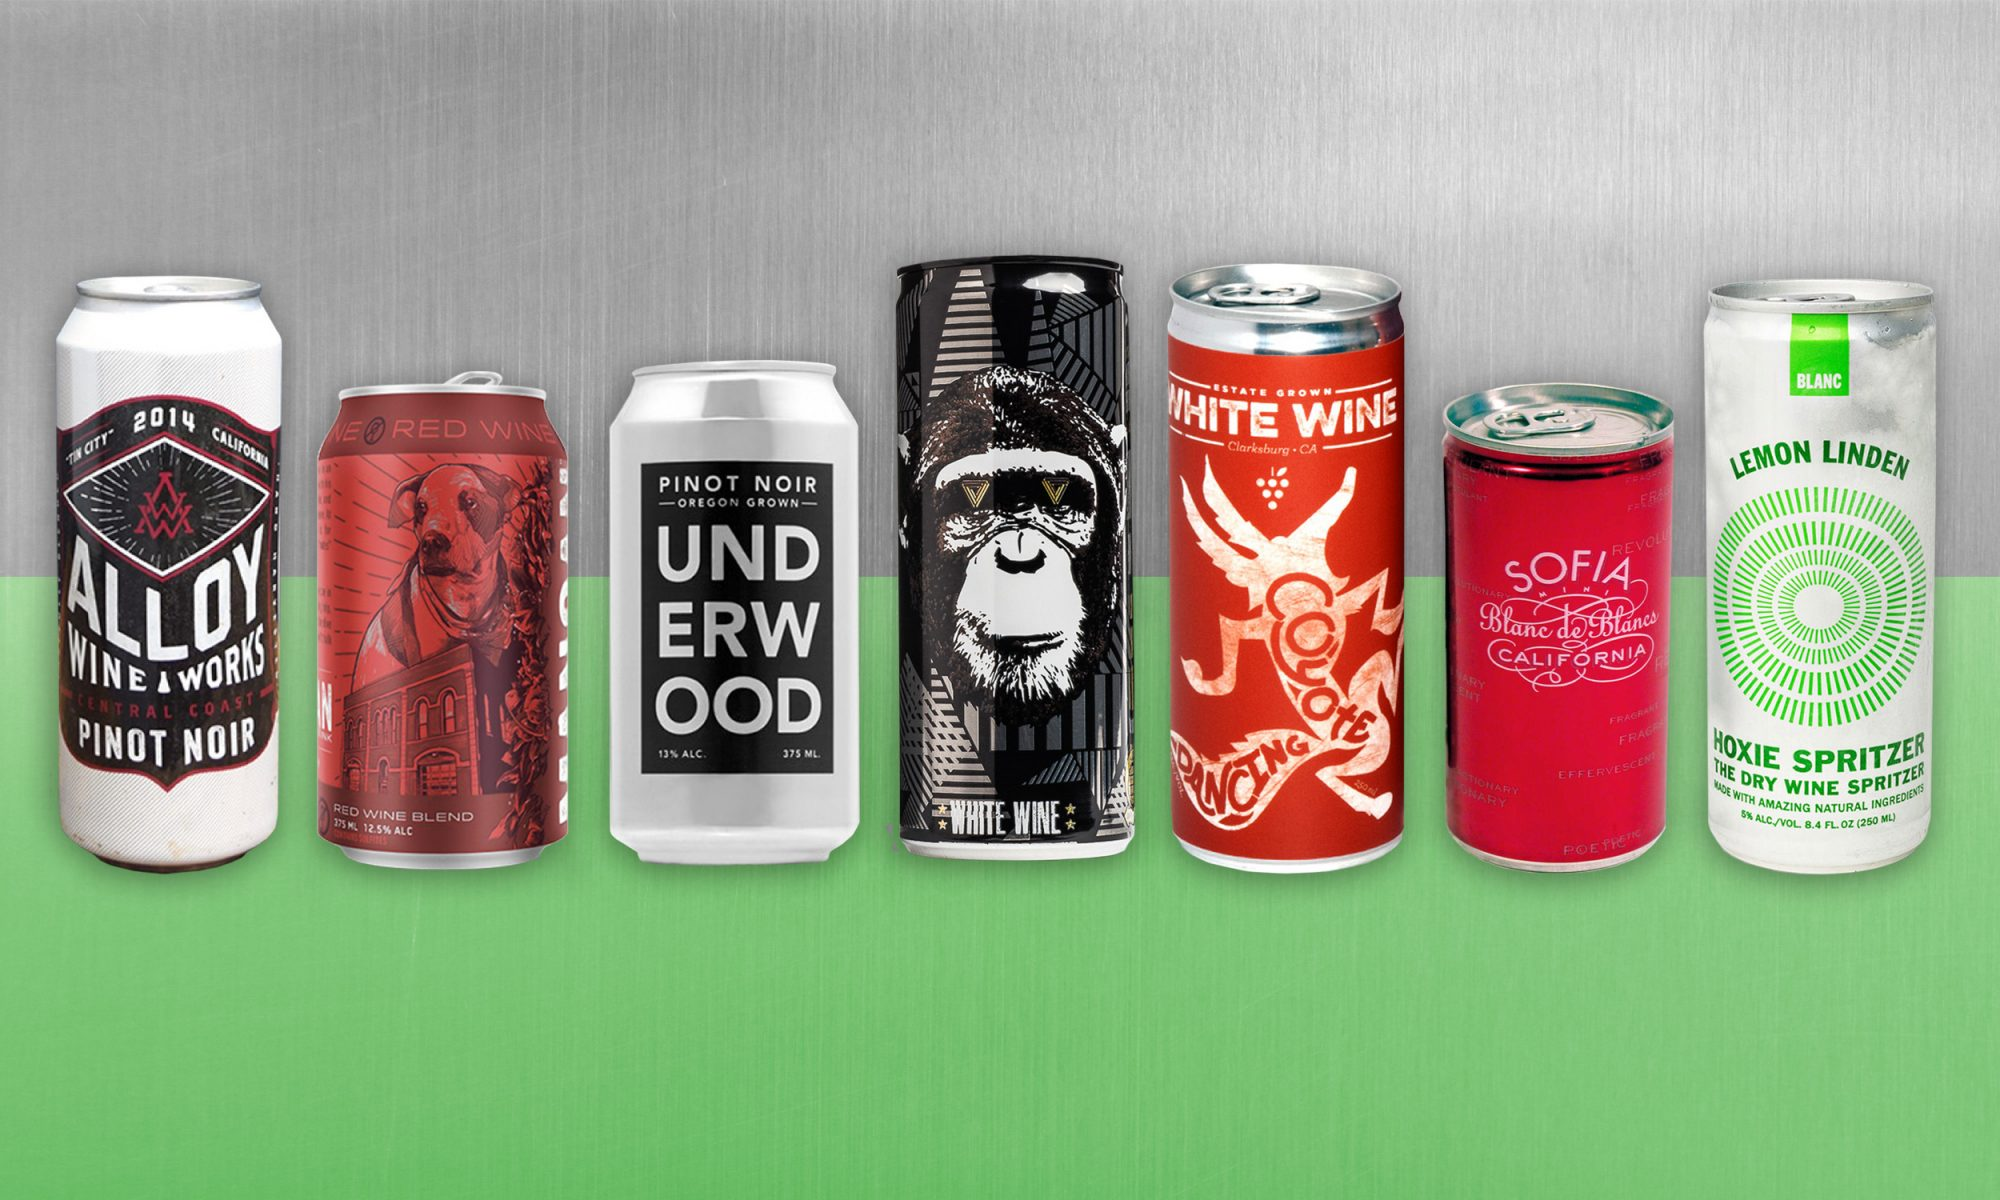 EC: The Best and Worst Canned Wines for Public Drinking